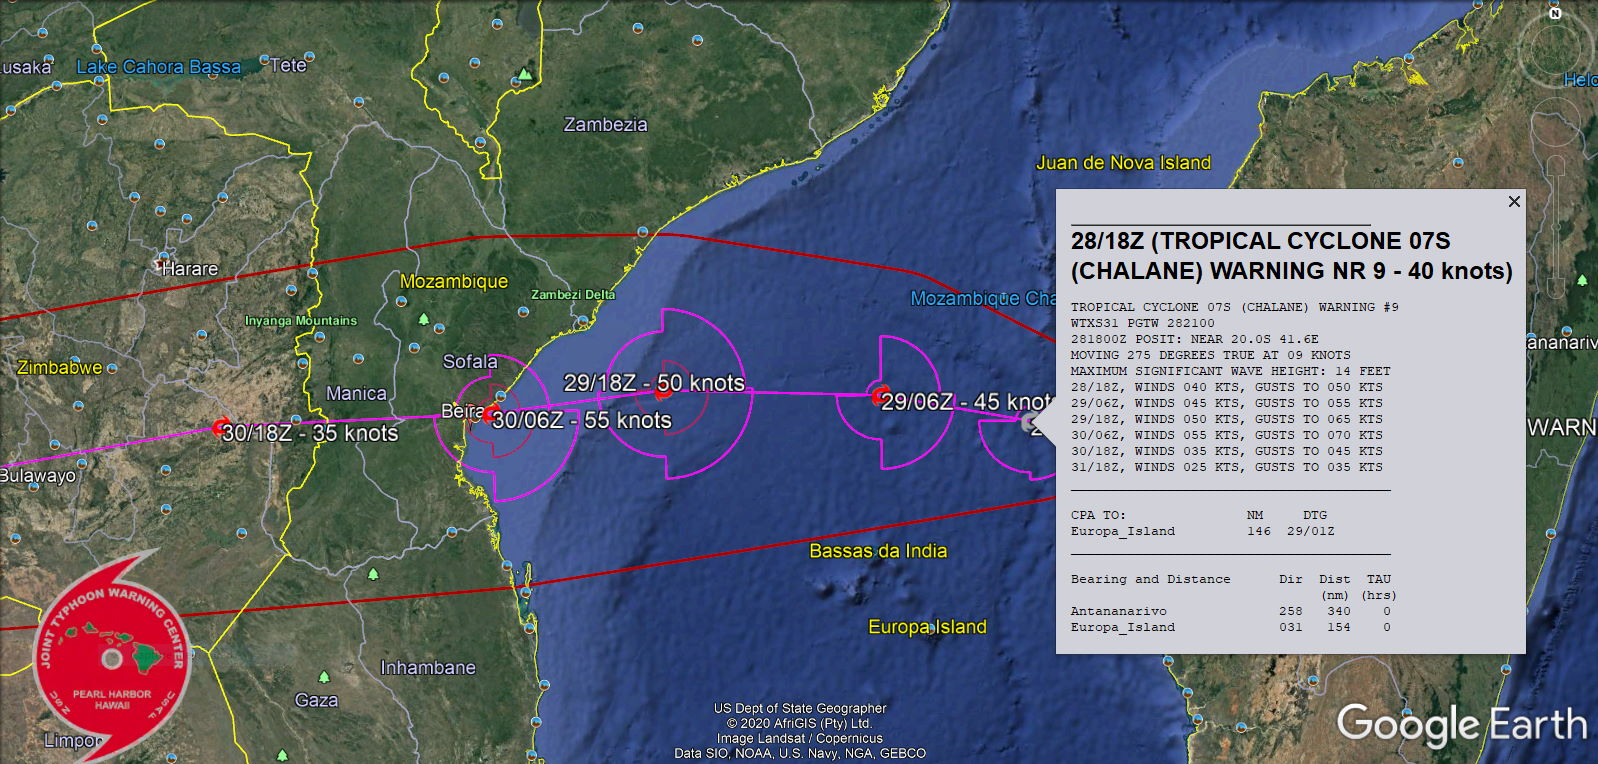 DUE TO THE VERY WARM  SST/OHC, A SLIGHT POSSIBILITY OF A HIGHER INTENSITY REMAINS NEAR 36H JUST PRIOR TO LANDFALL NEAR BEIRA, MOZAMBIQUE.